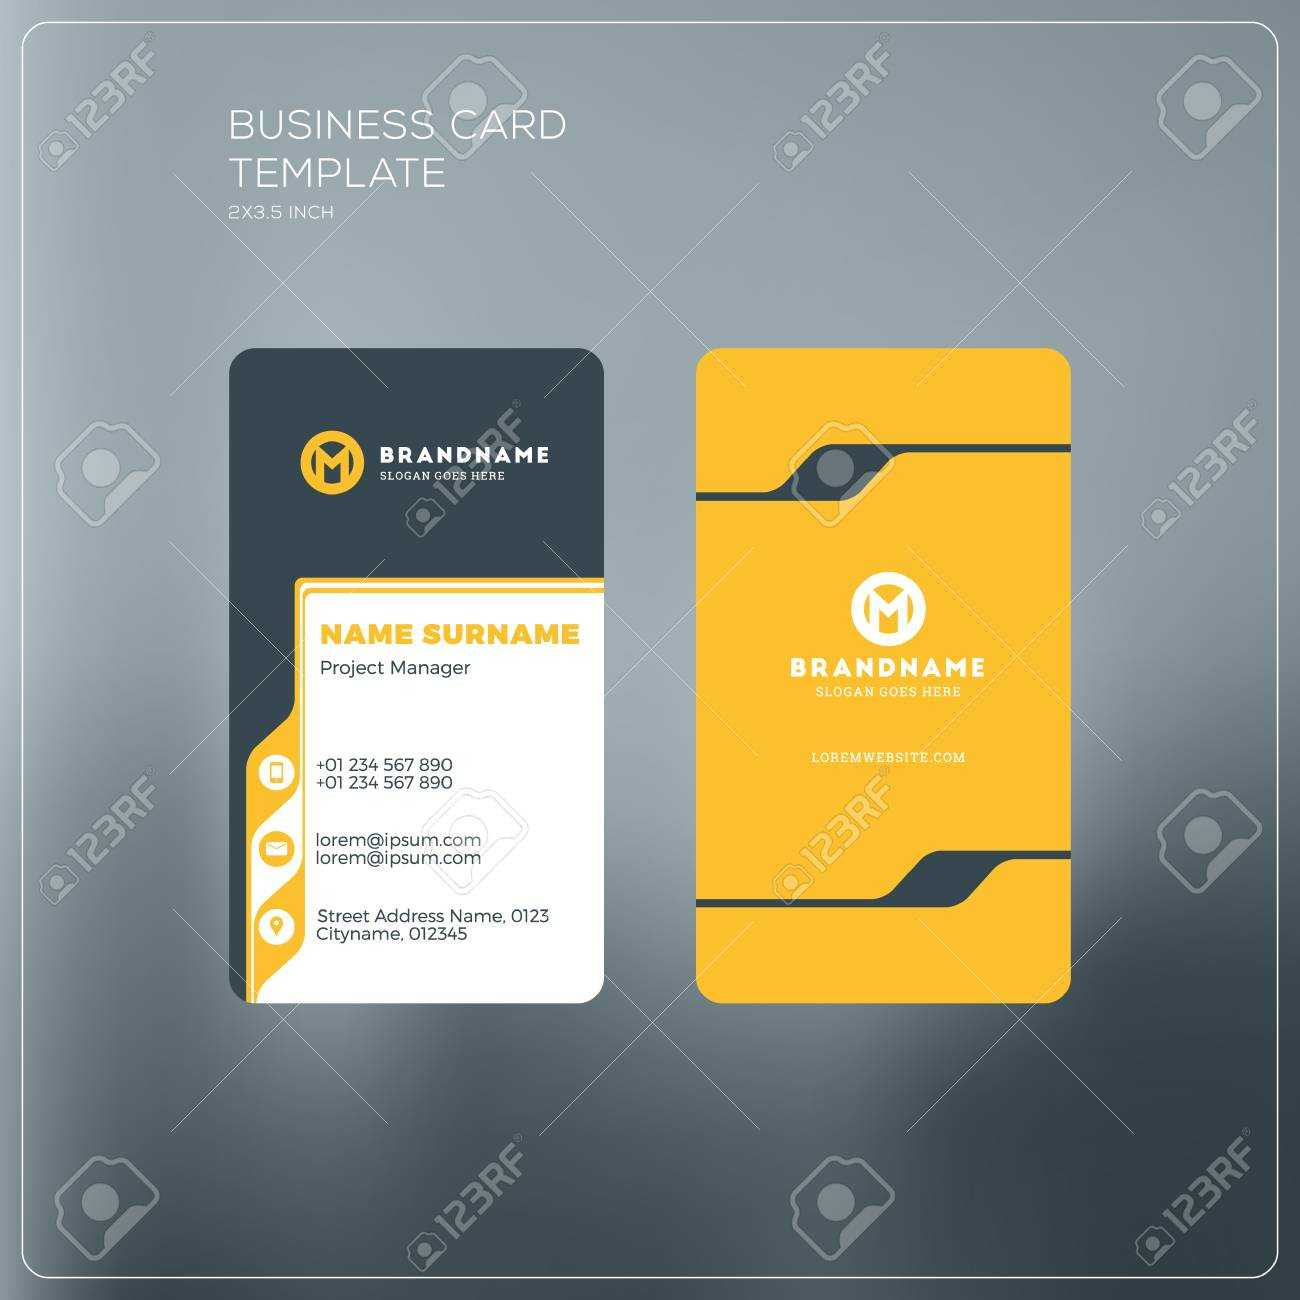 Personal Business Cards Template Throughout Google Search Business Card Template